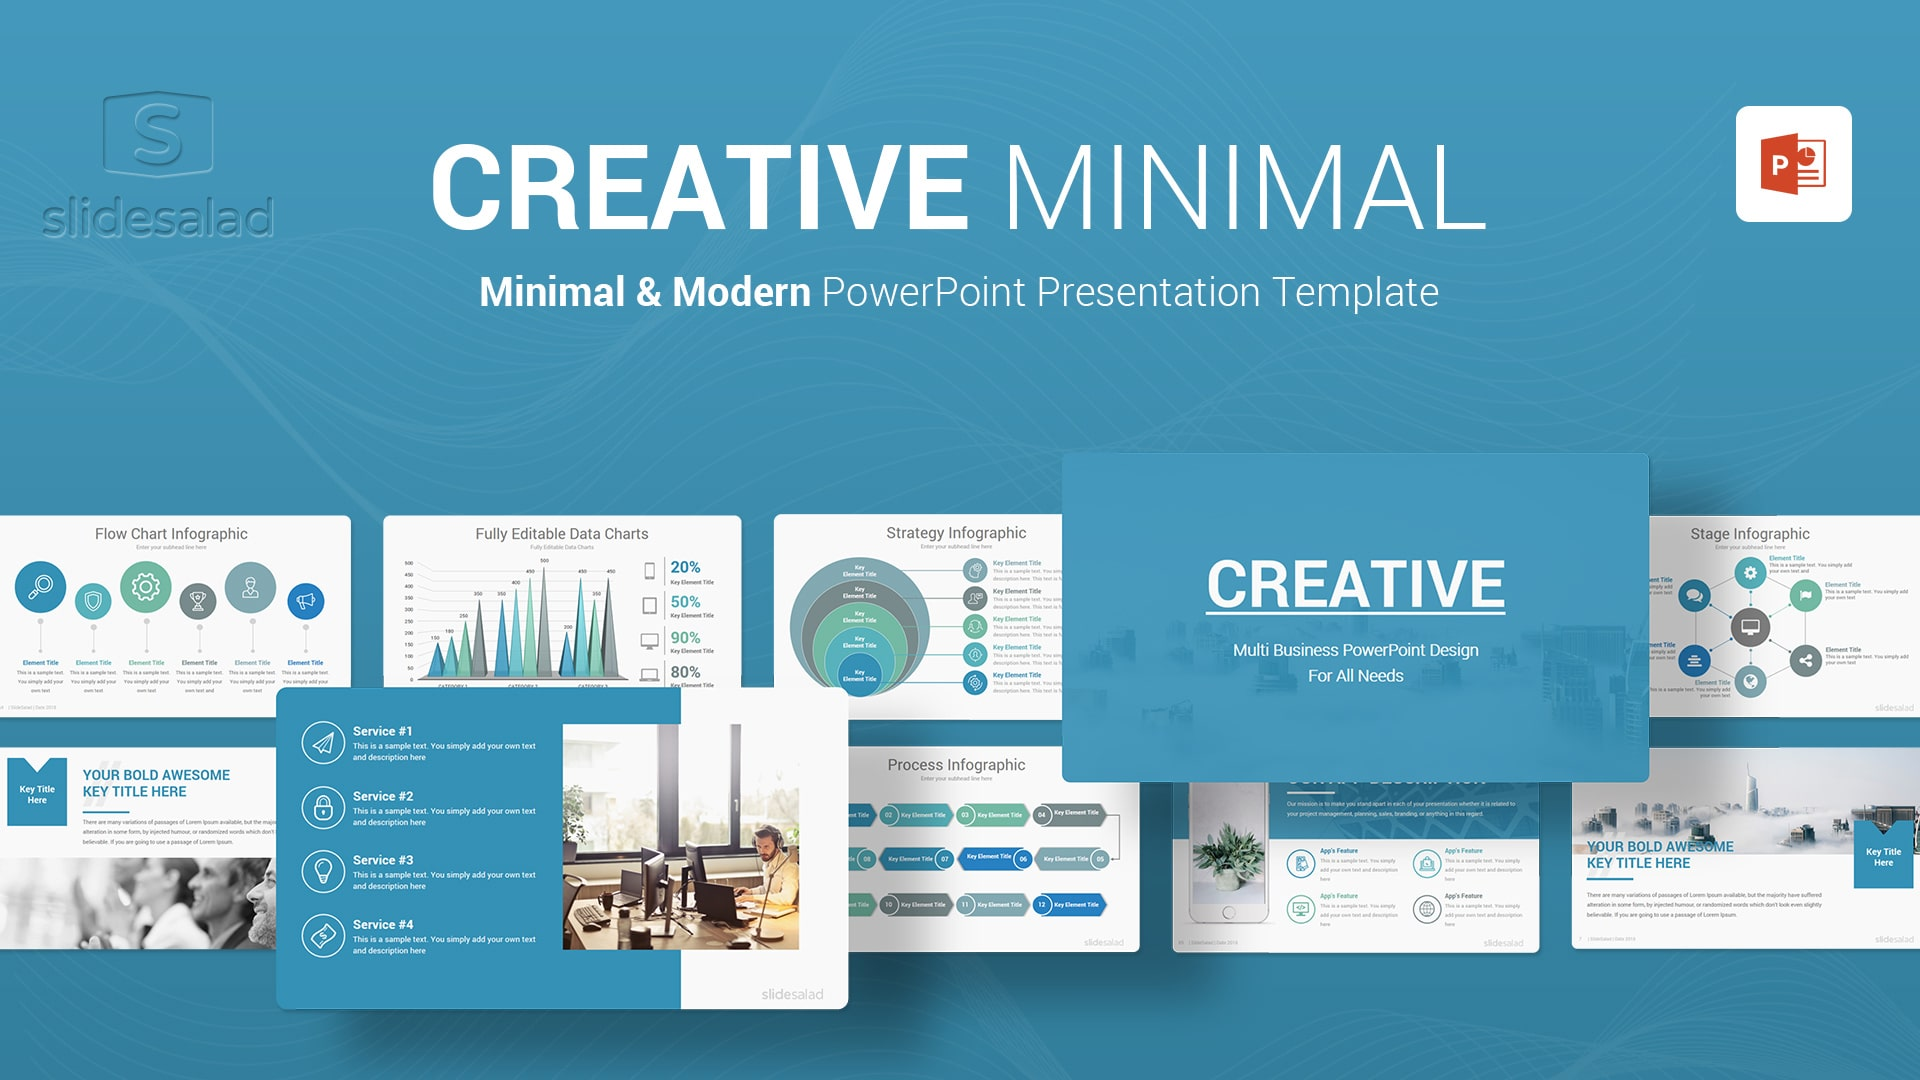 Creative Business PowerPoint Templates - Best Webinar PowerPoint Template